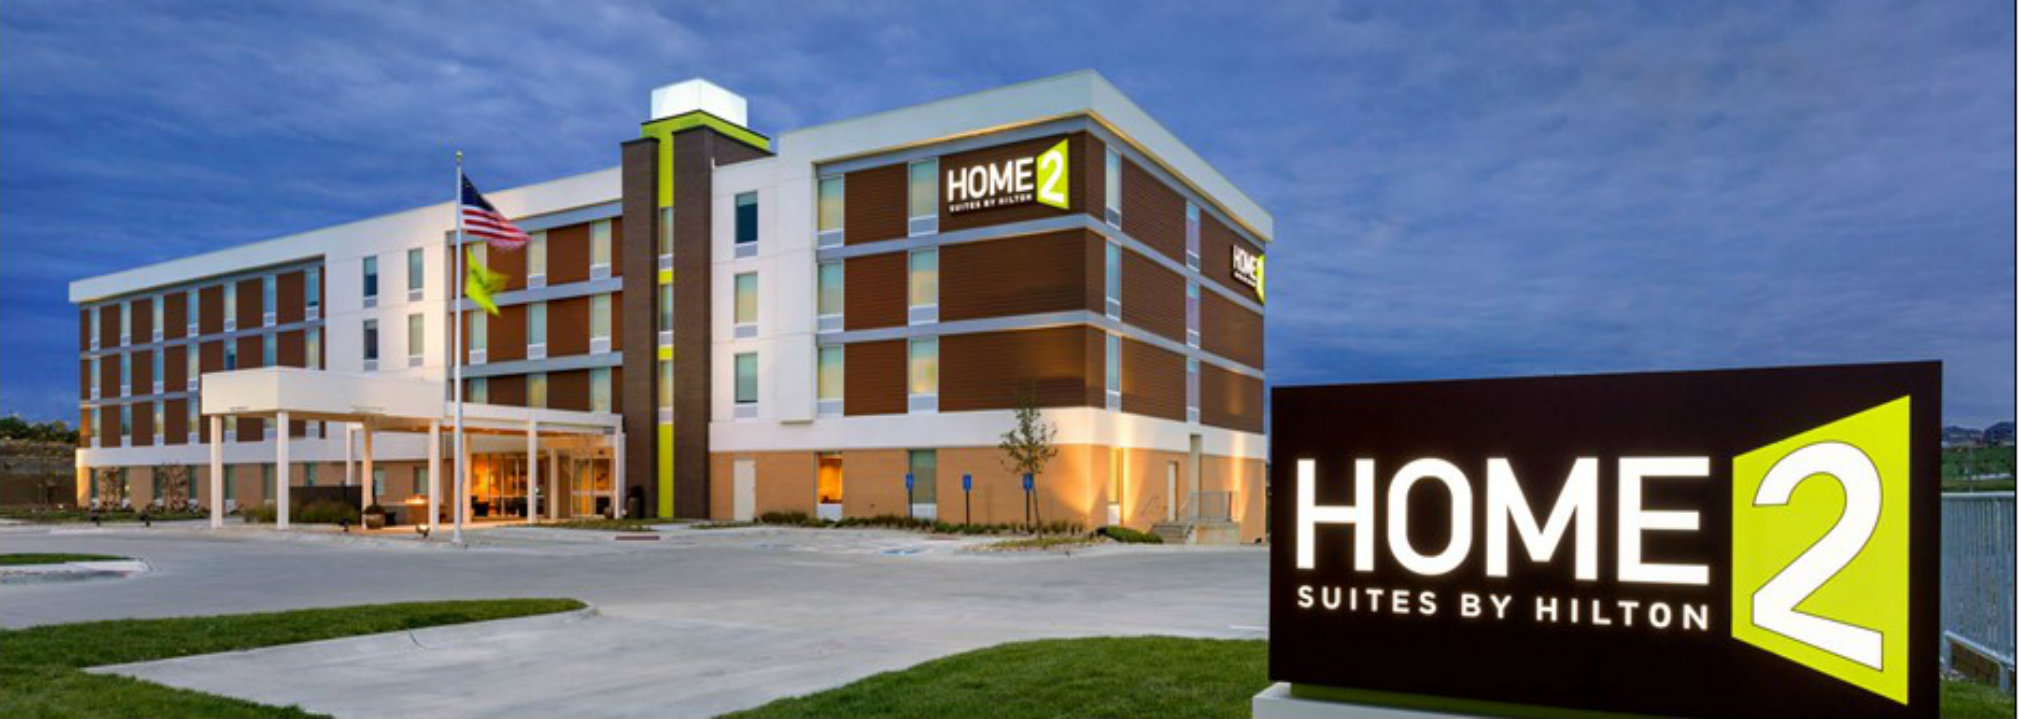 Home2 Suites - Silver Spring, MD rendering